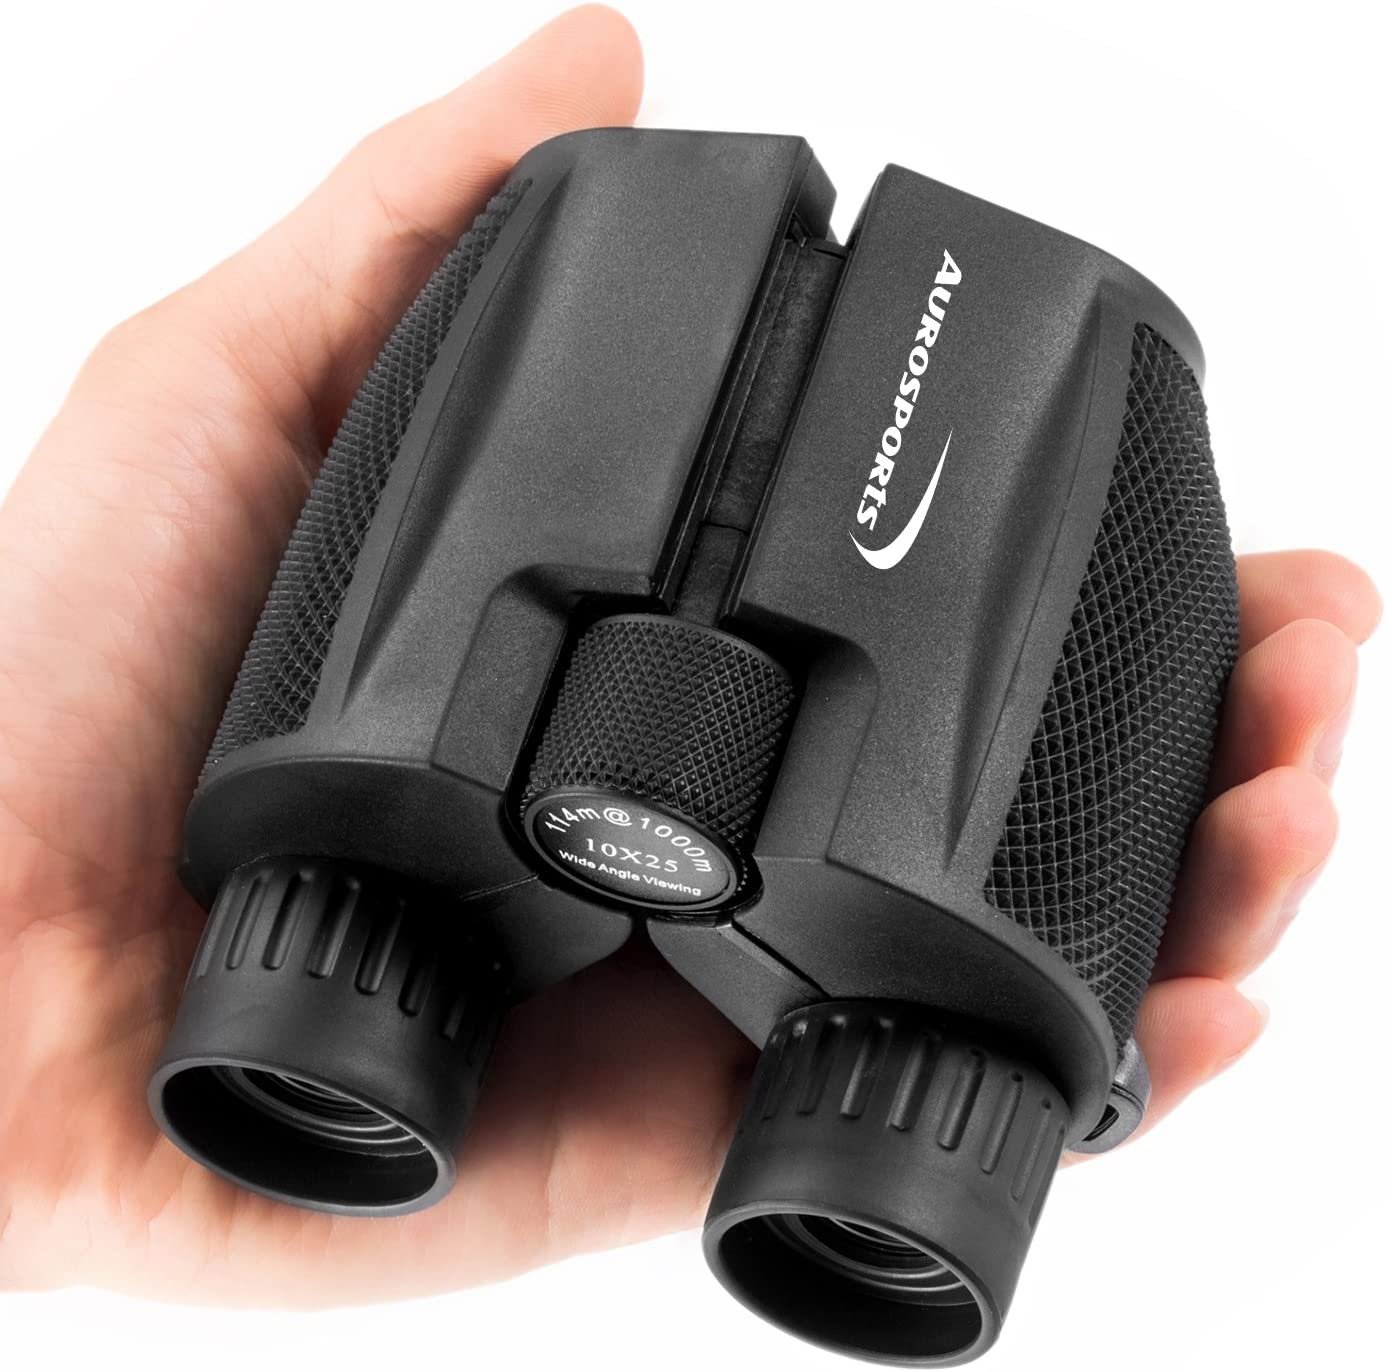 Aurosports 10x25 Folding High Powered Compact Night Vision Binoculars